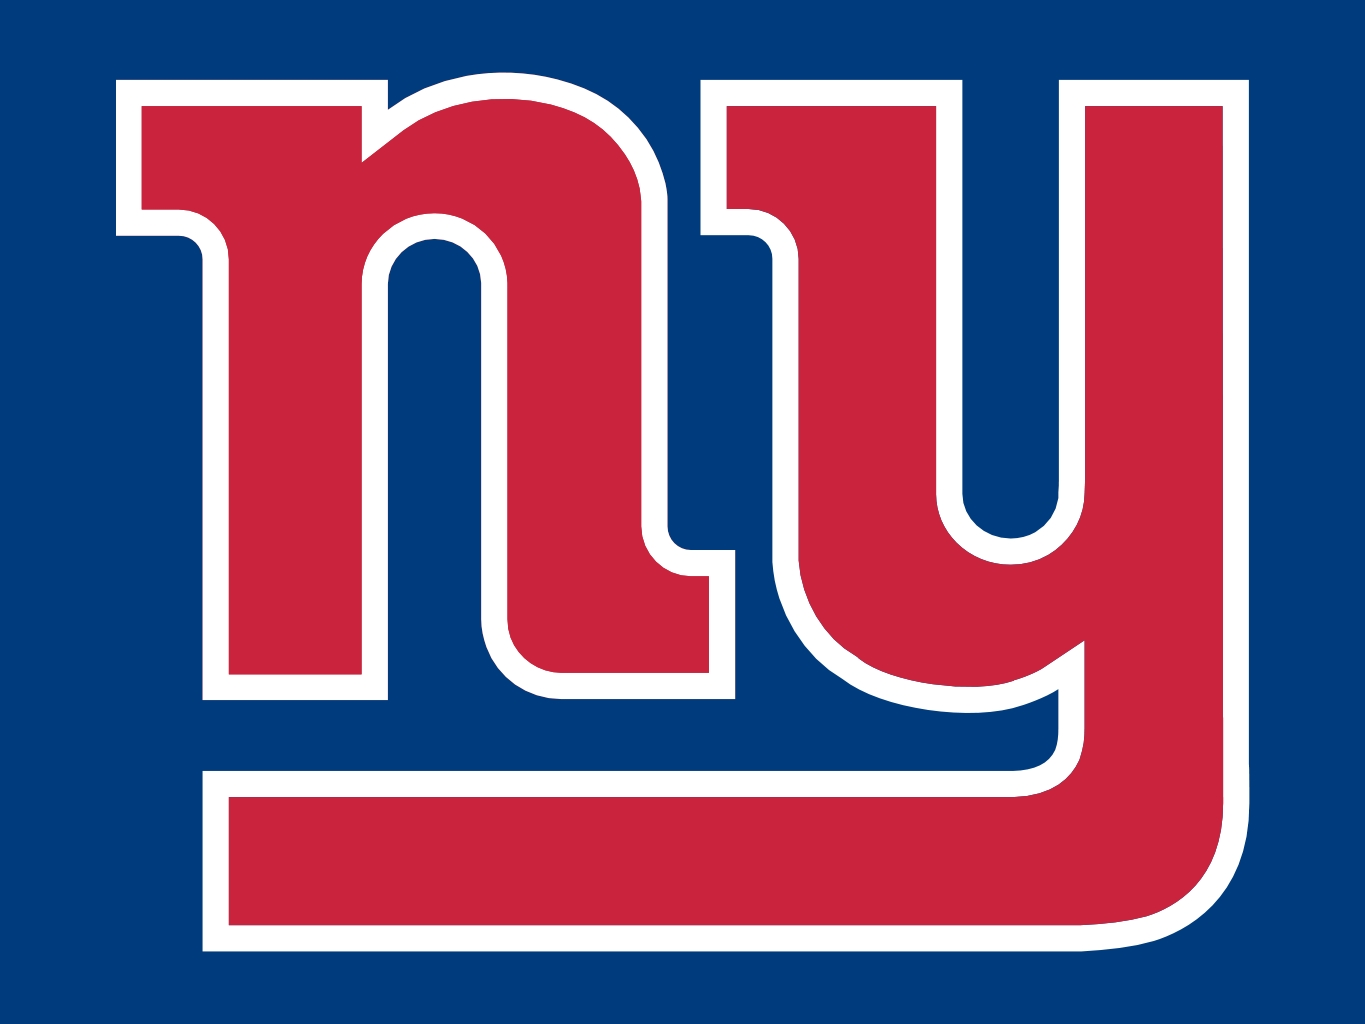 Football clipart ny giants Football logo clipart  Giants